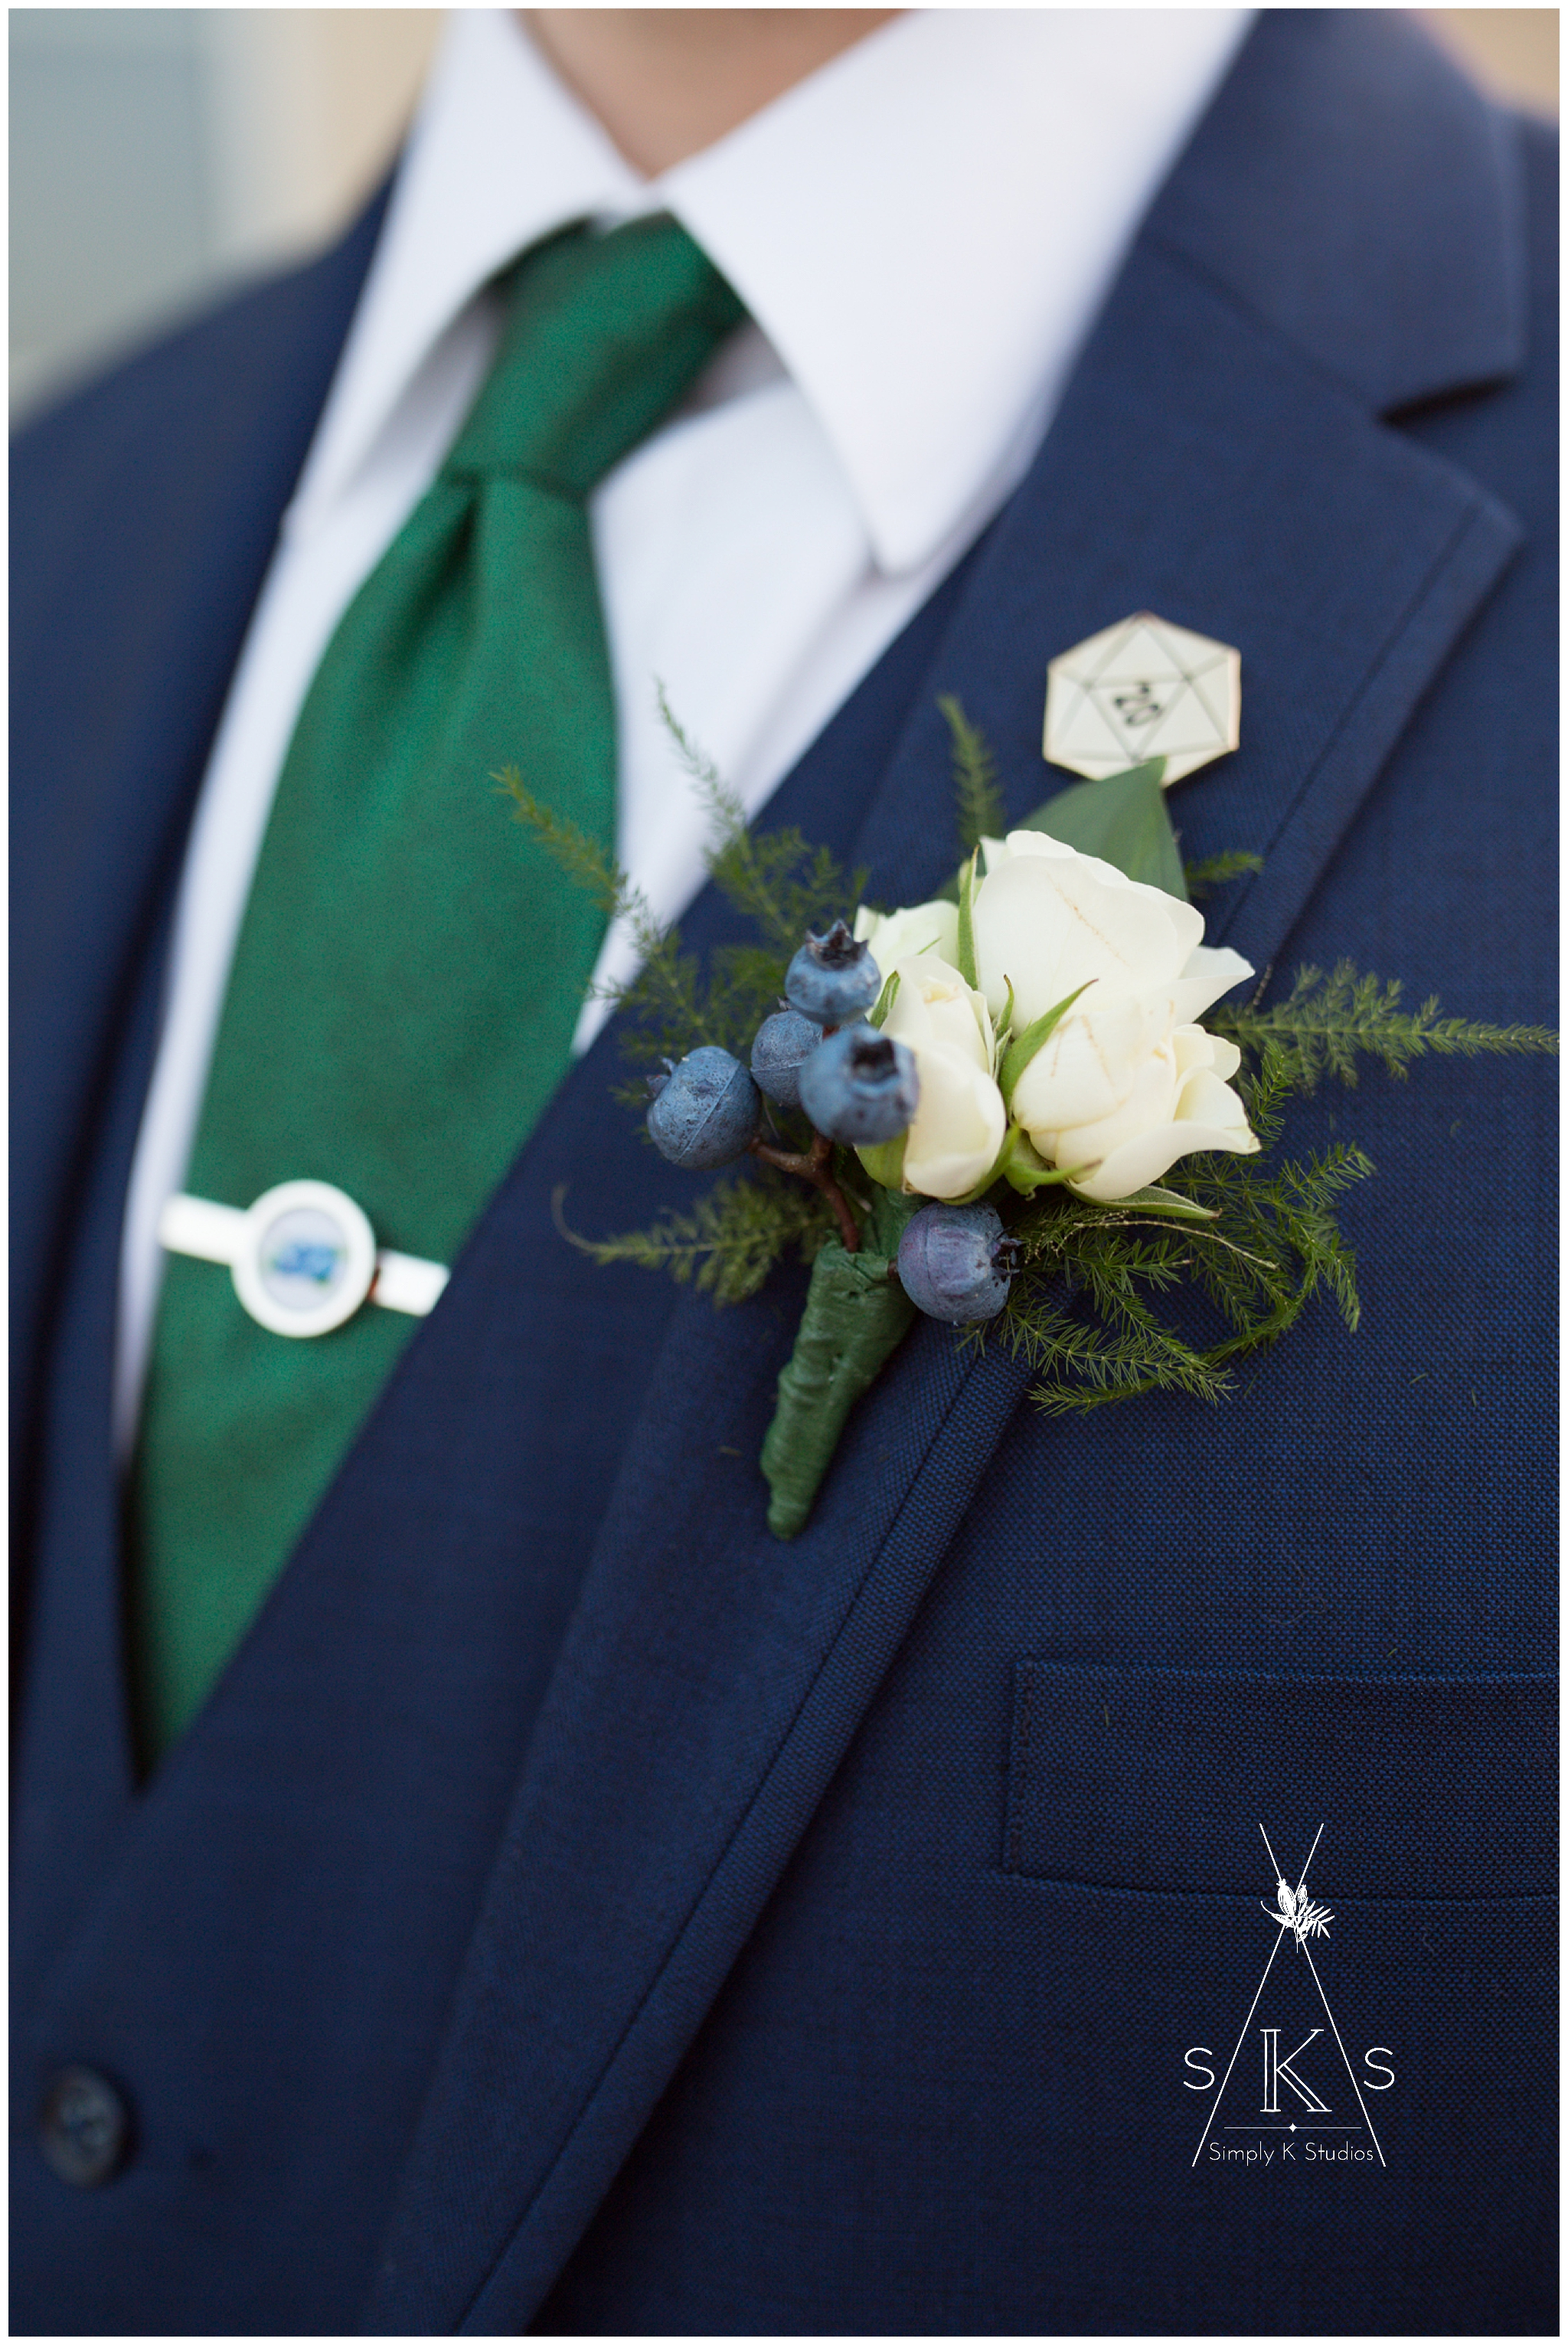 23 Boutonniere for a Groom CT.jpg